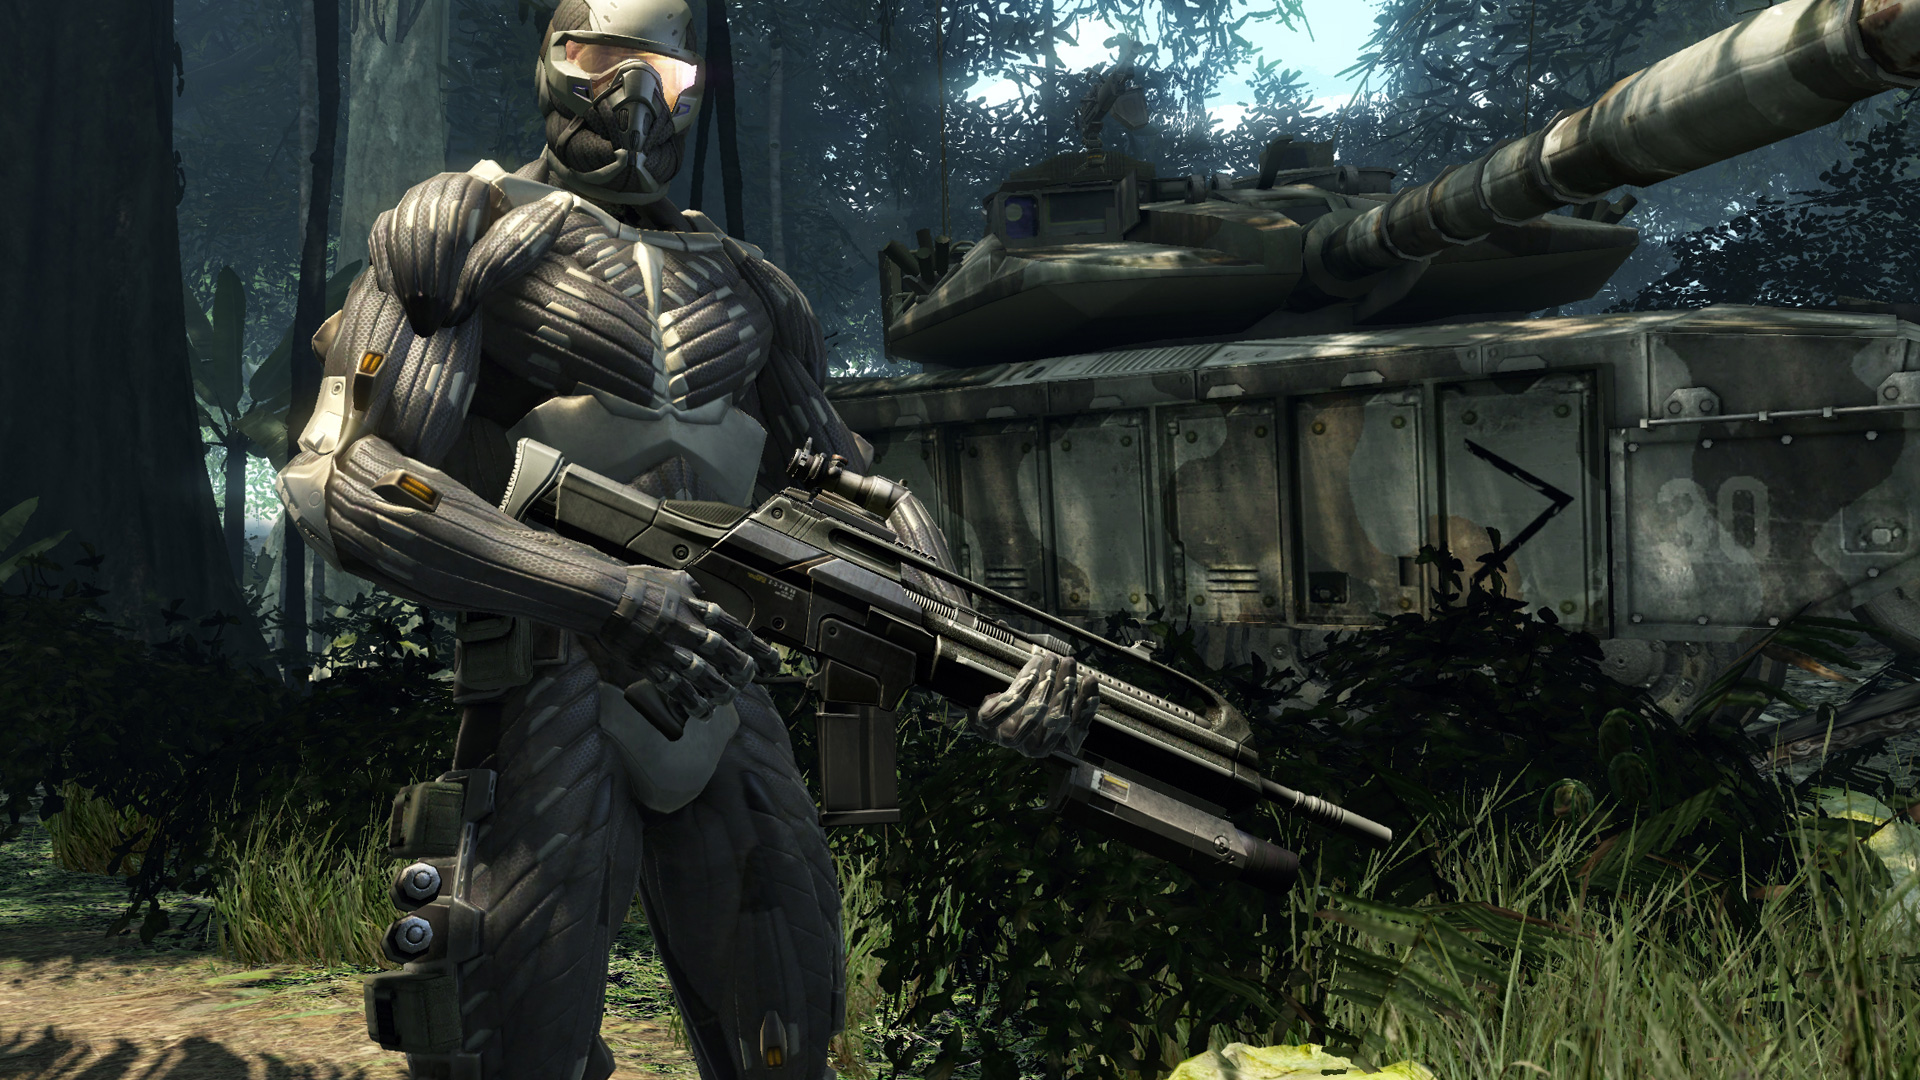 Free Crysis Wallpaper in 1920x1080